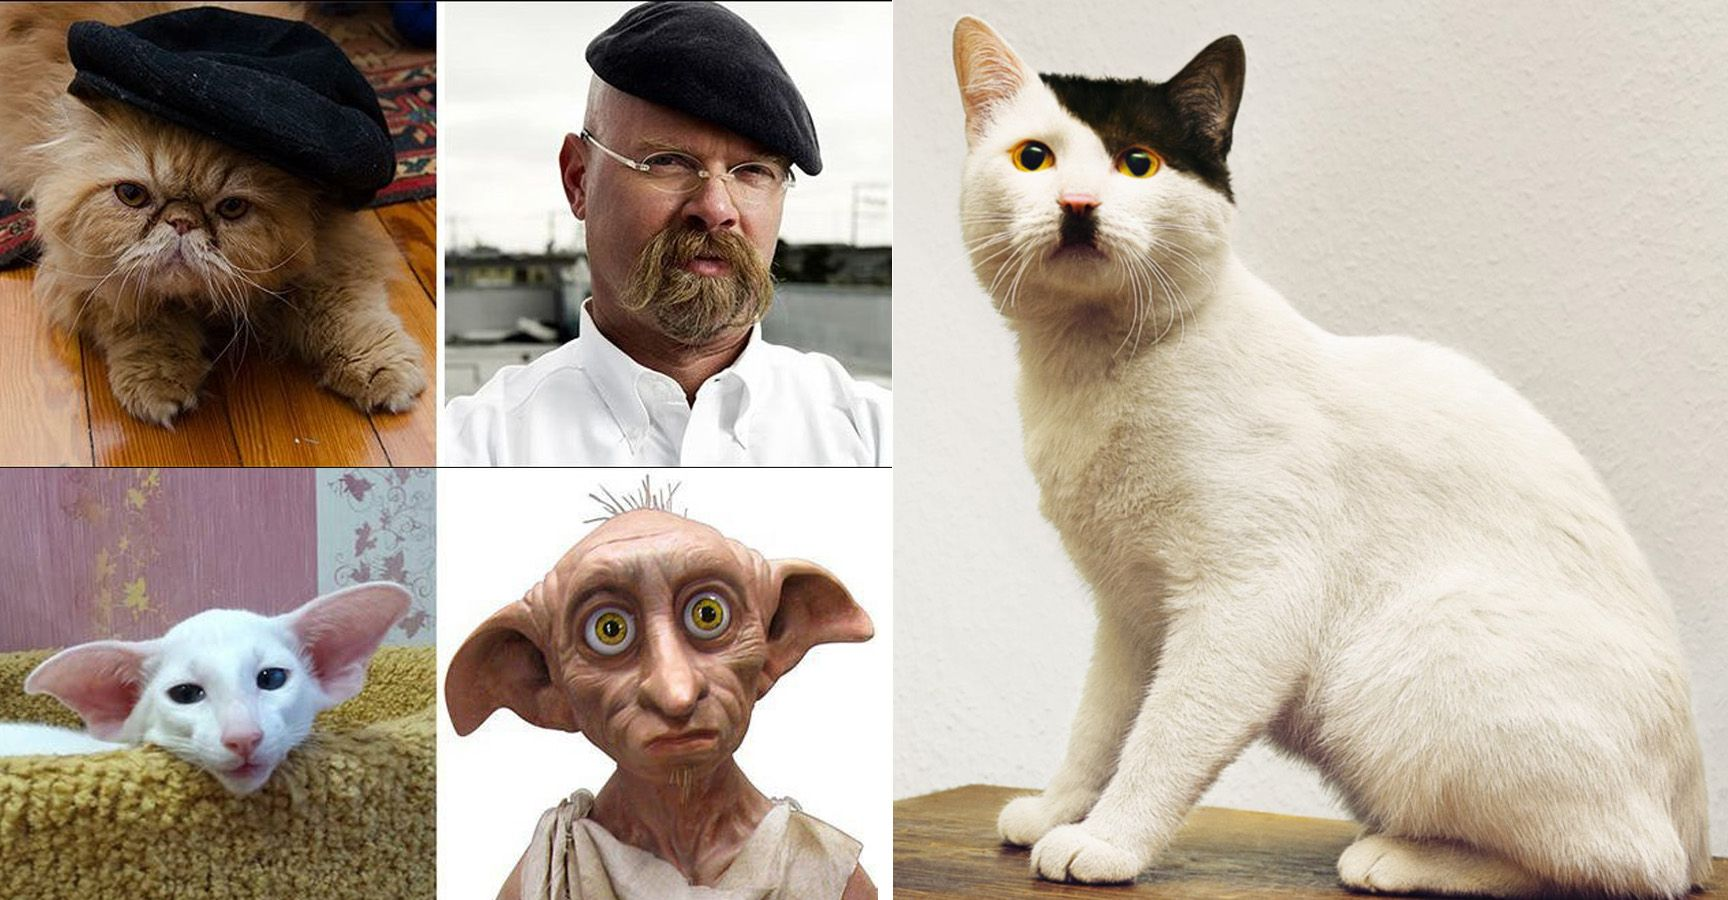 These 15 Cats That Look Like Celebrities Will Totally Baffle You